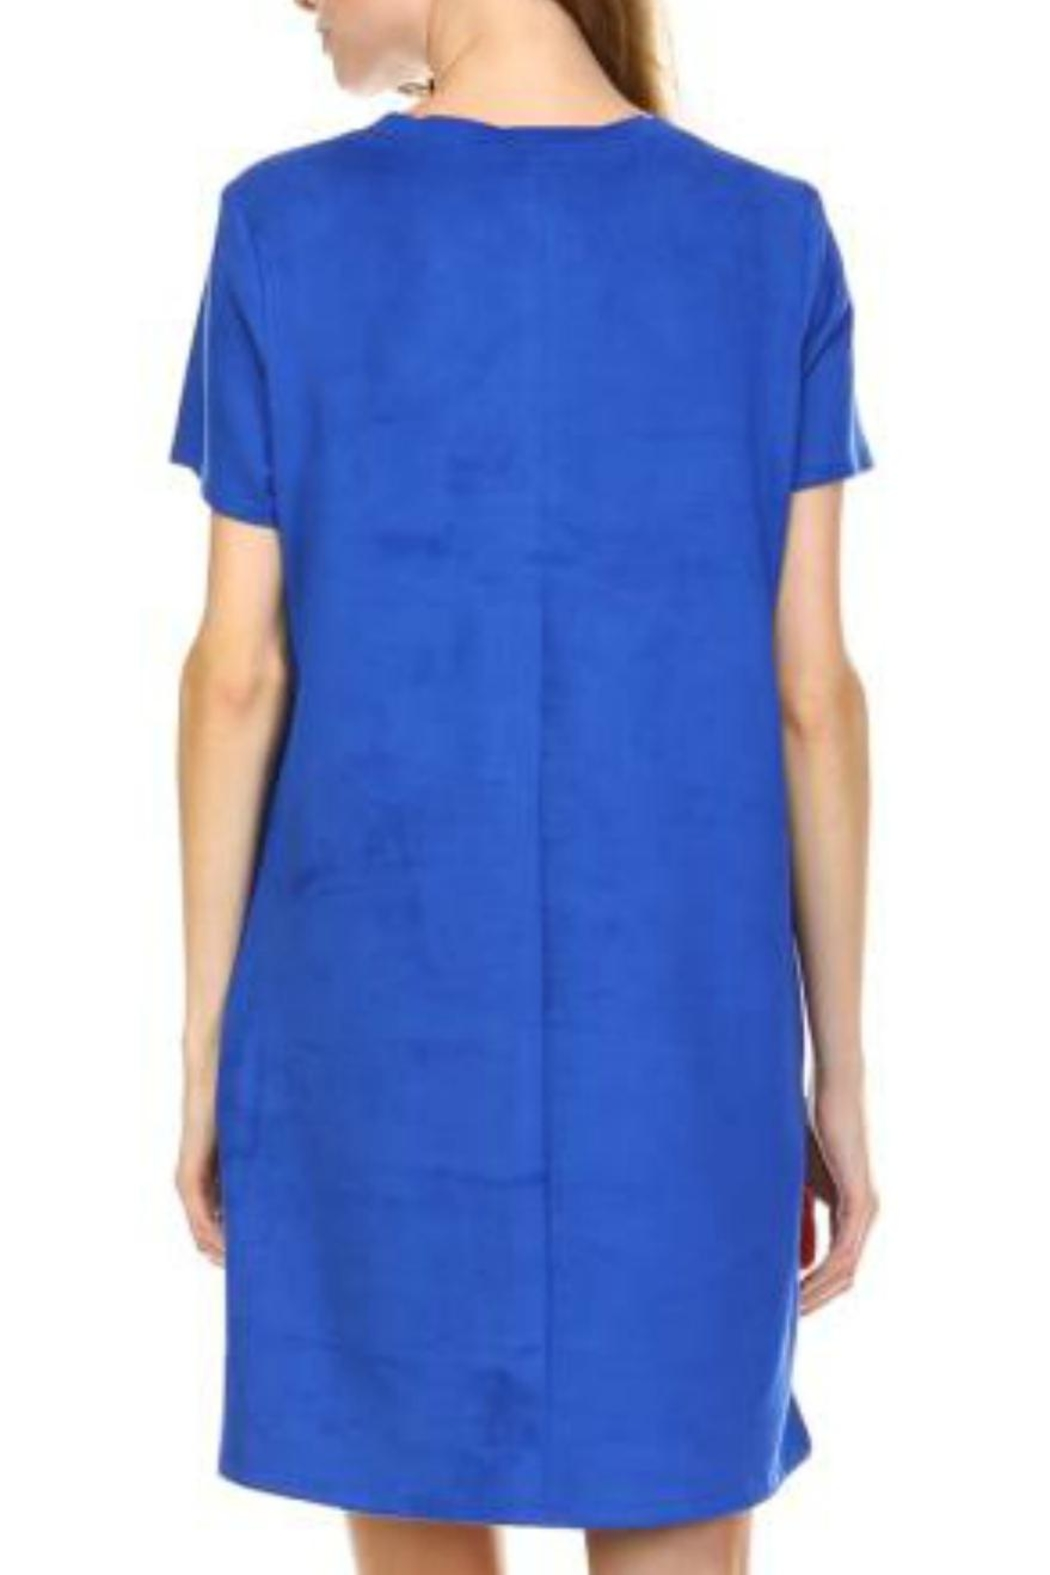 JOH Audrey Faux-Suede Dress - Side Cropped Image